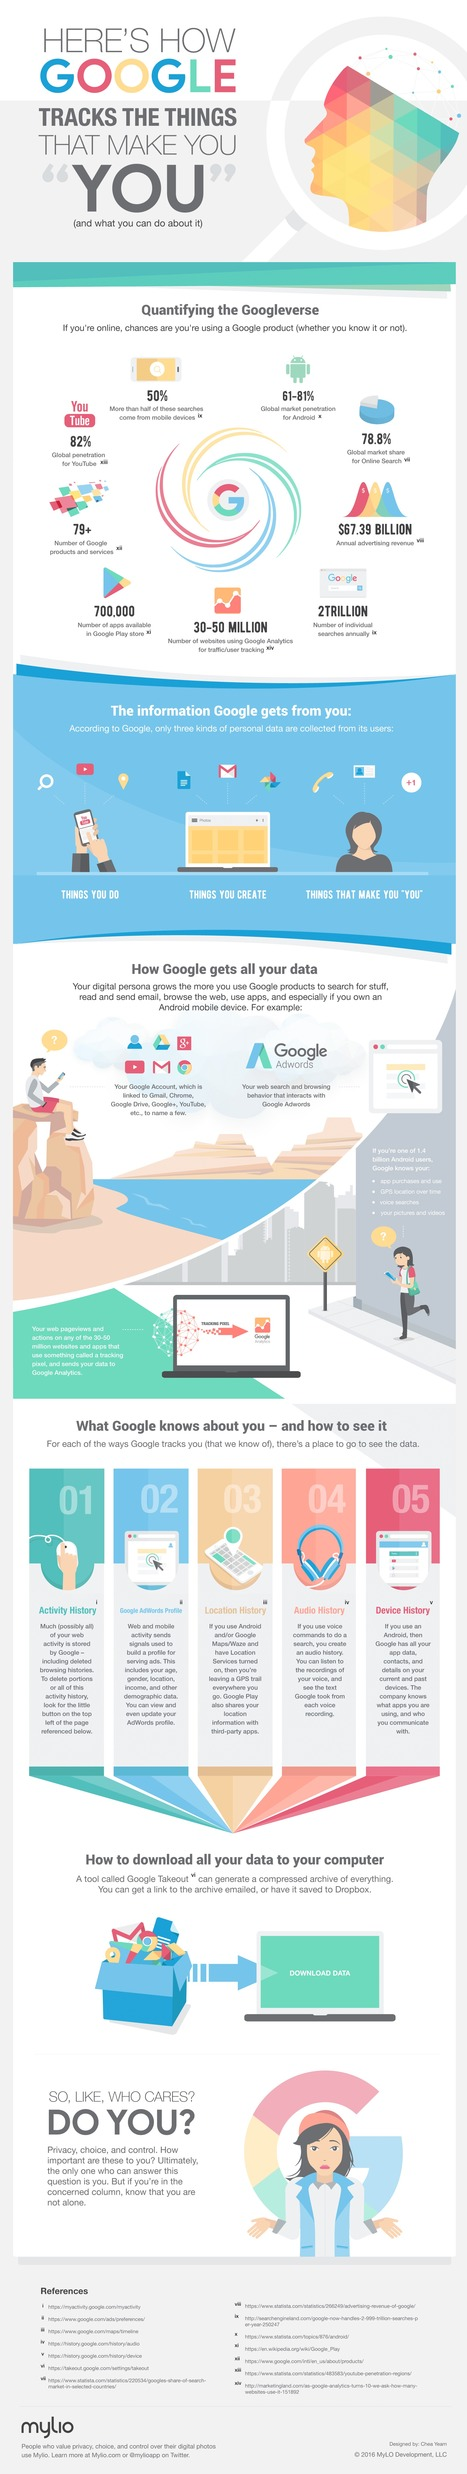 INFOGRAPHIC: Here's How Google Tracks You - and What You Can Do About It | :: The 4th Era :: | Scoop.it